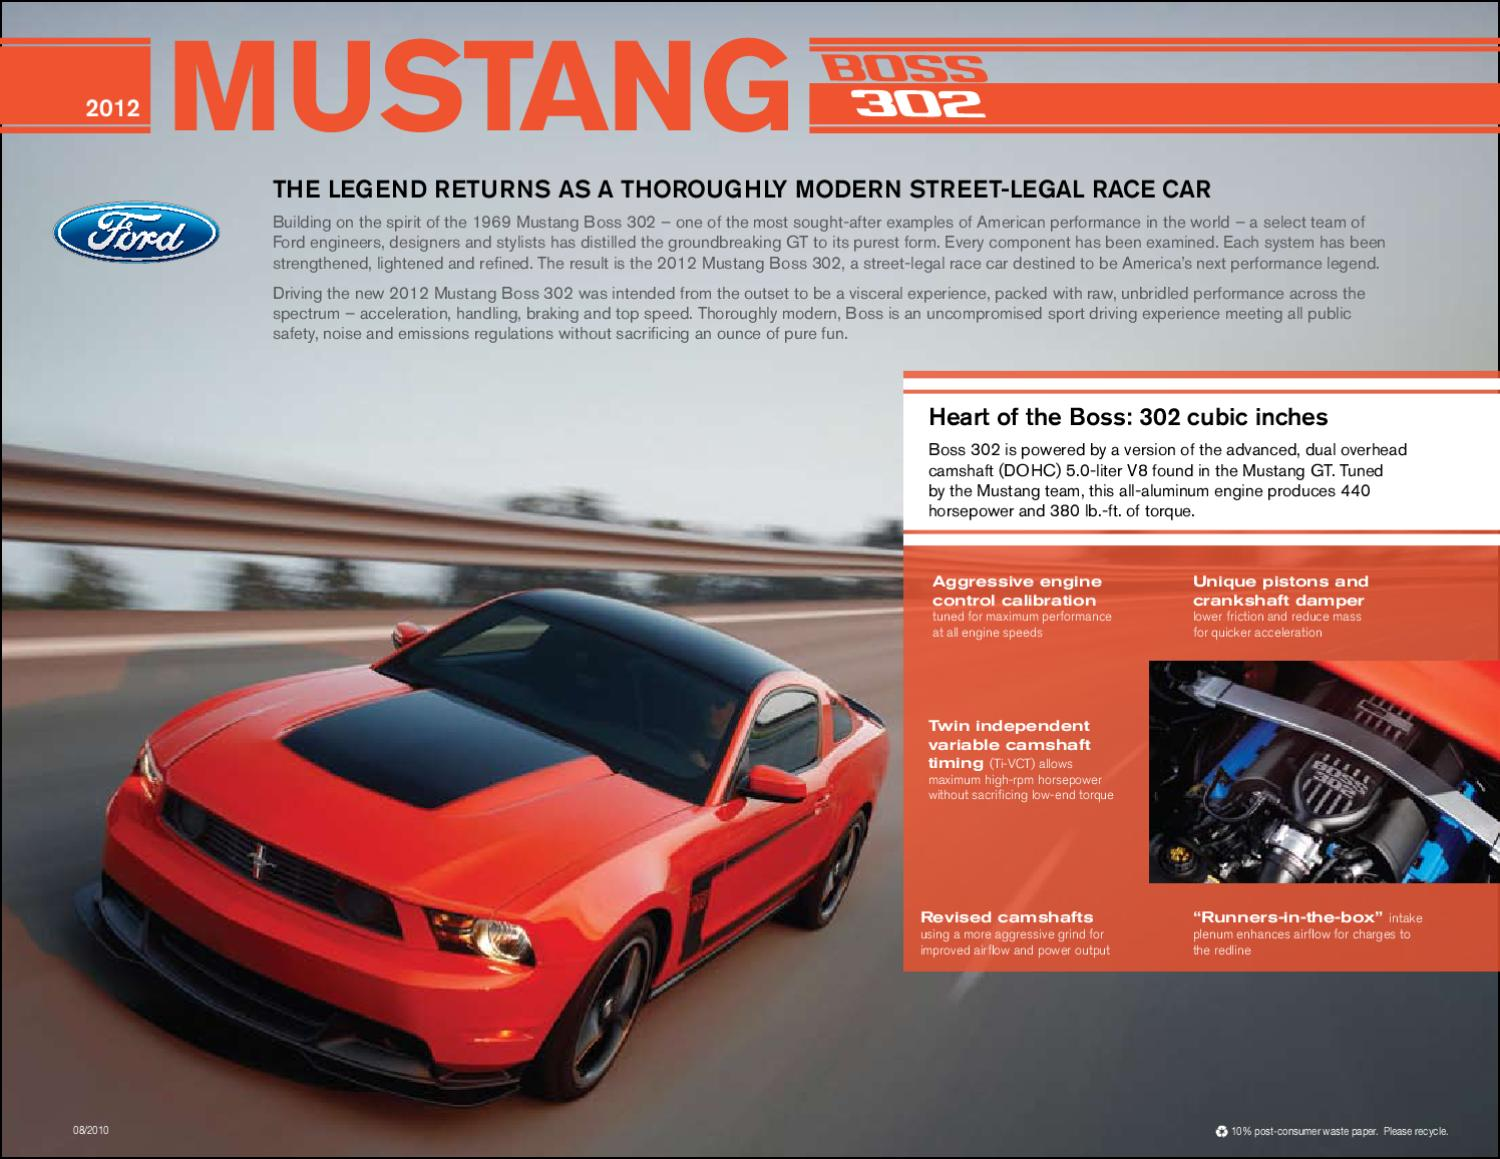 2012 Ford Mustang Boss 302 brochure USA by Ted Sluymer - issuu